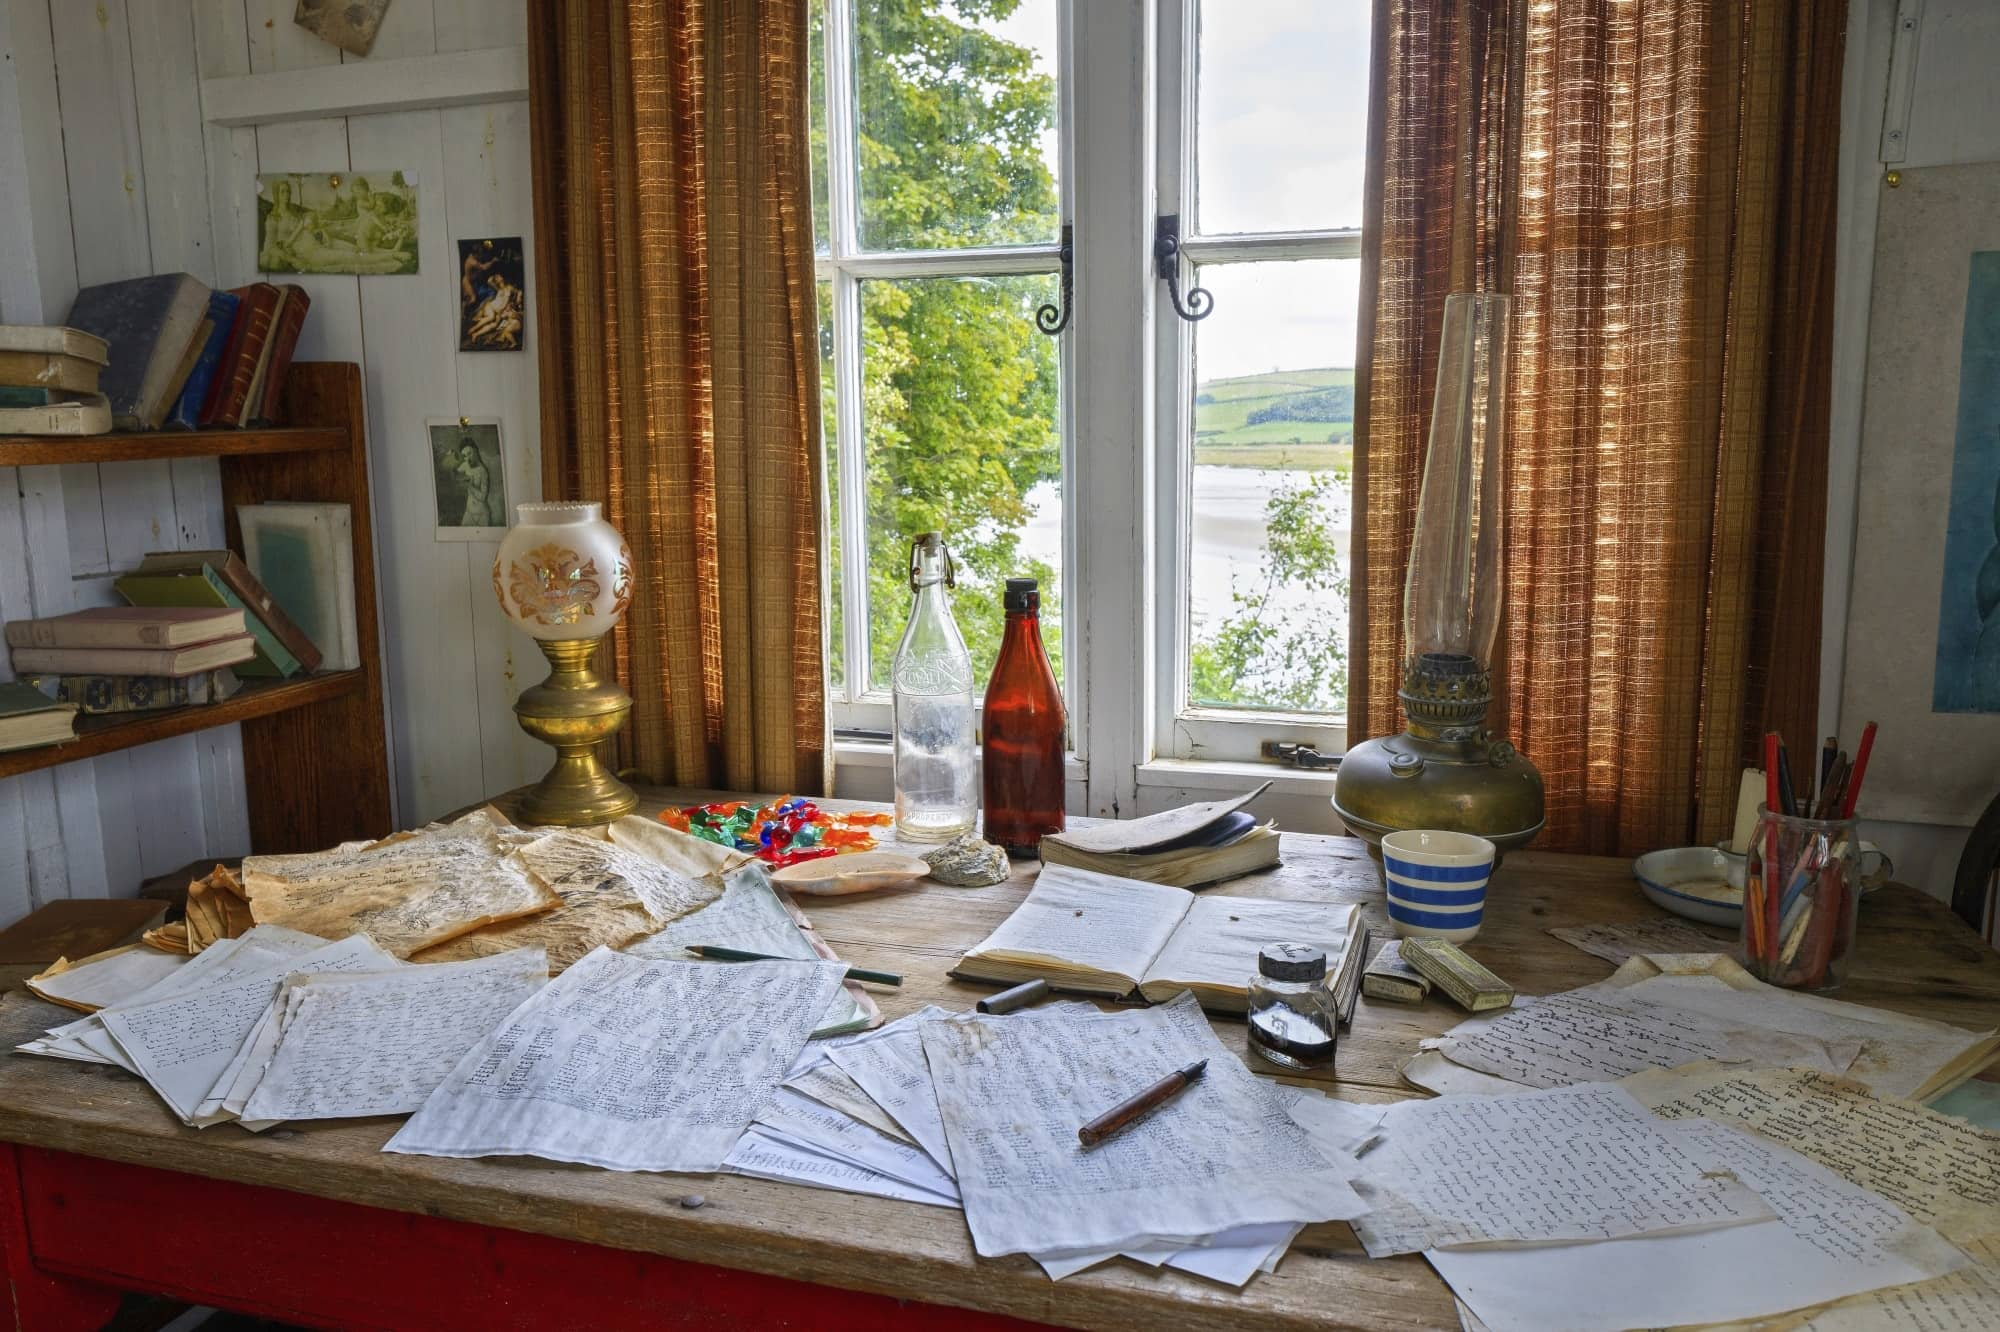 Image of Dylan Thomas's writing desk at Laugharne, Carmarthenshire, Wales